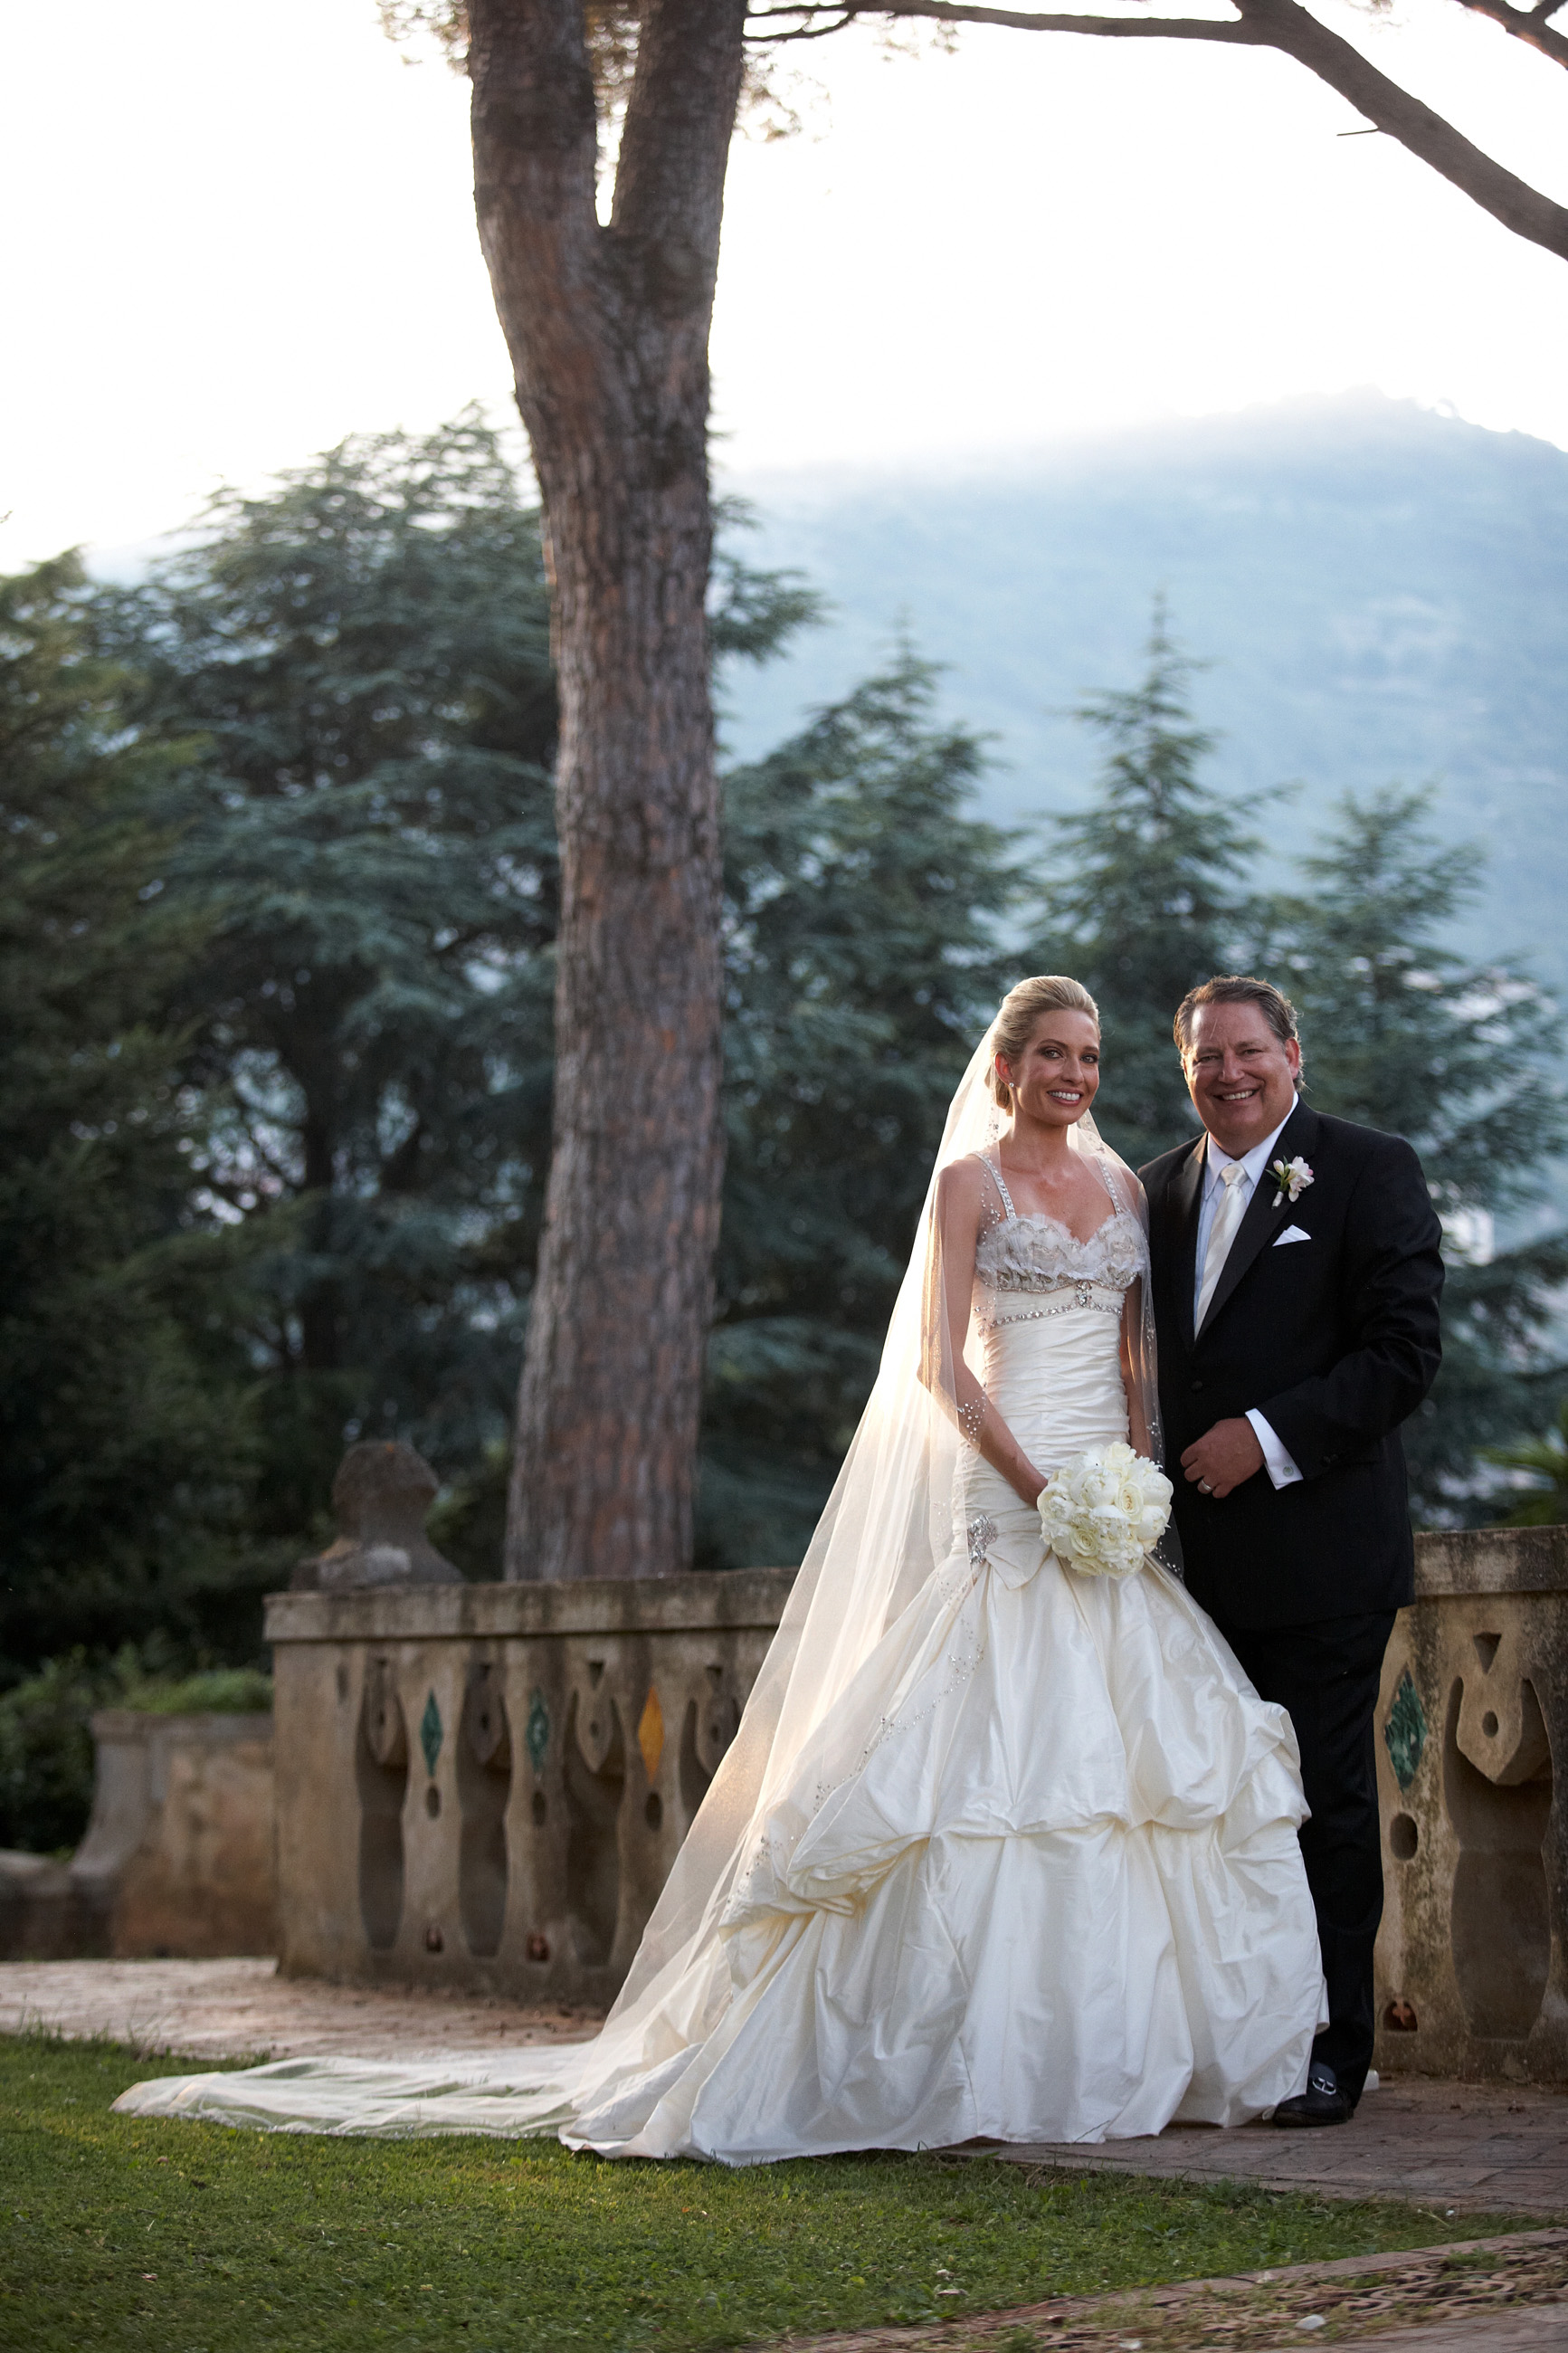 Couple Details - Ravello, Italy - Summer Wedding - Julian Leaver Events